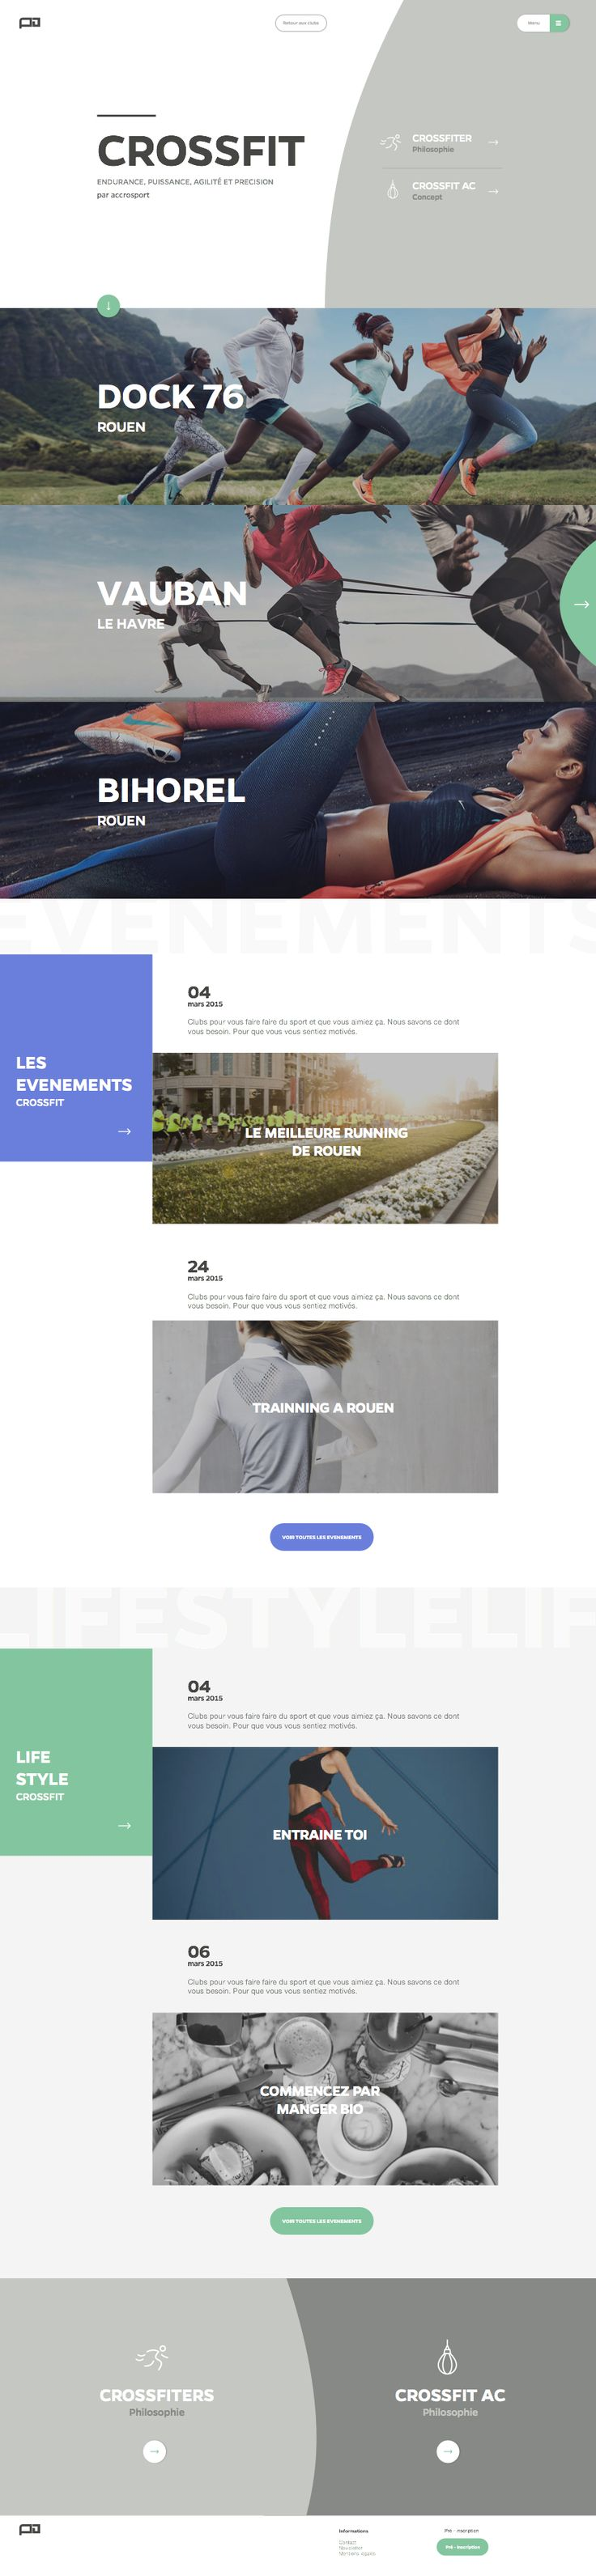 I've been working on a composition, grid and oveall look and feel for the new Ino Zeljak personal website. Here are some more ideas of type, grid, colors exploration :)